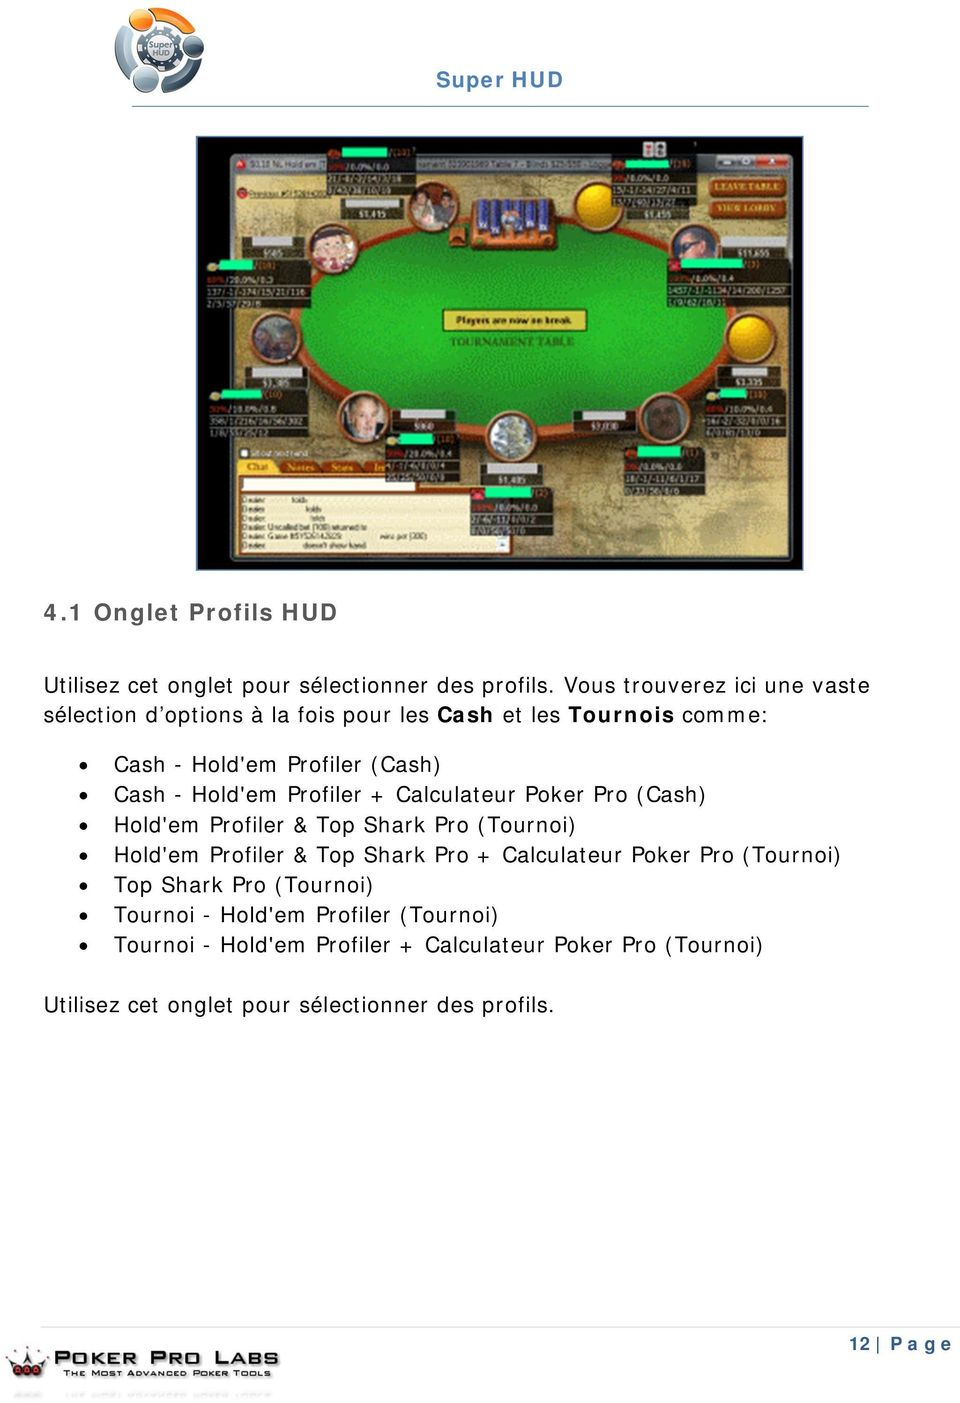 Hold'em Profiler + Calculateur Poker Pro (Cash) Hold'em Profiler & Top Shark Pro (Tournoi) Hold'em Profiler & Top Shark Pro + Calculateur